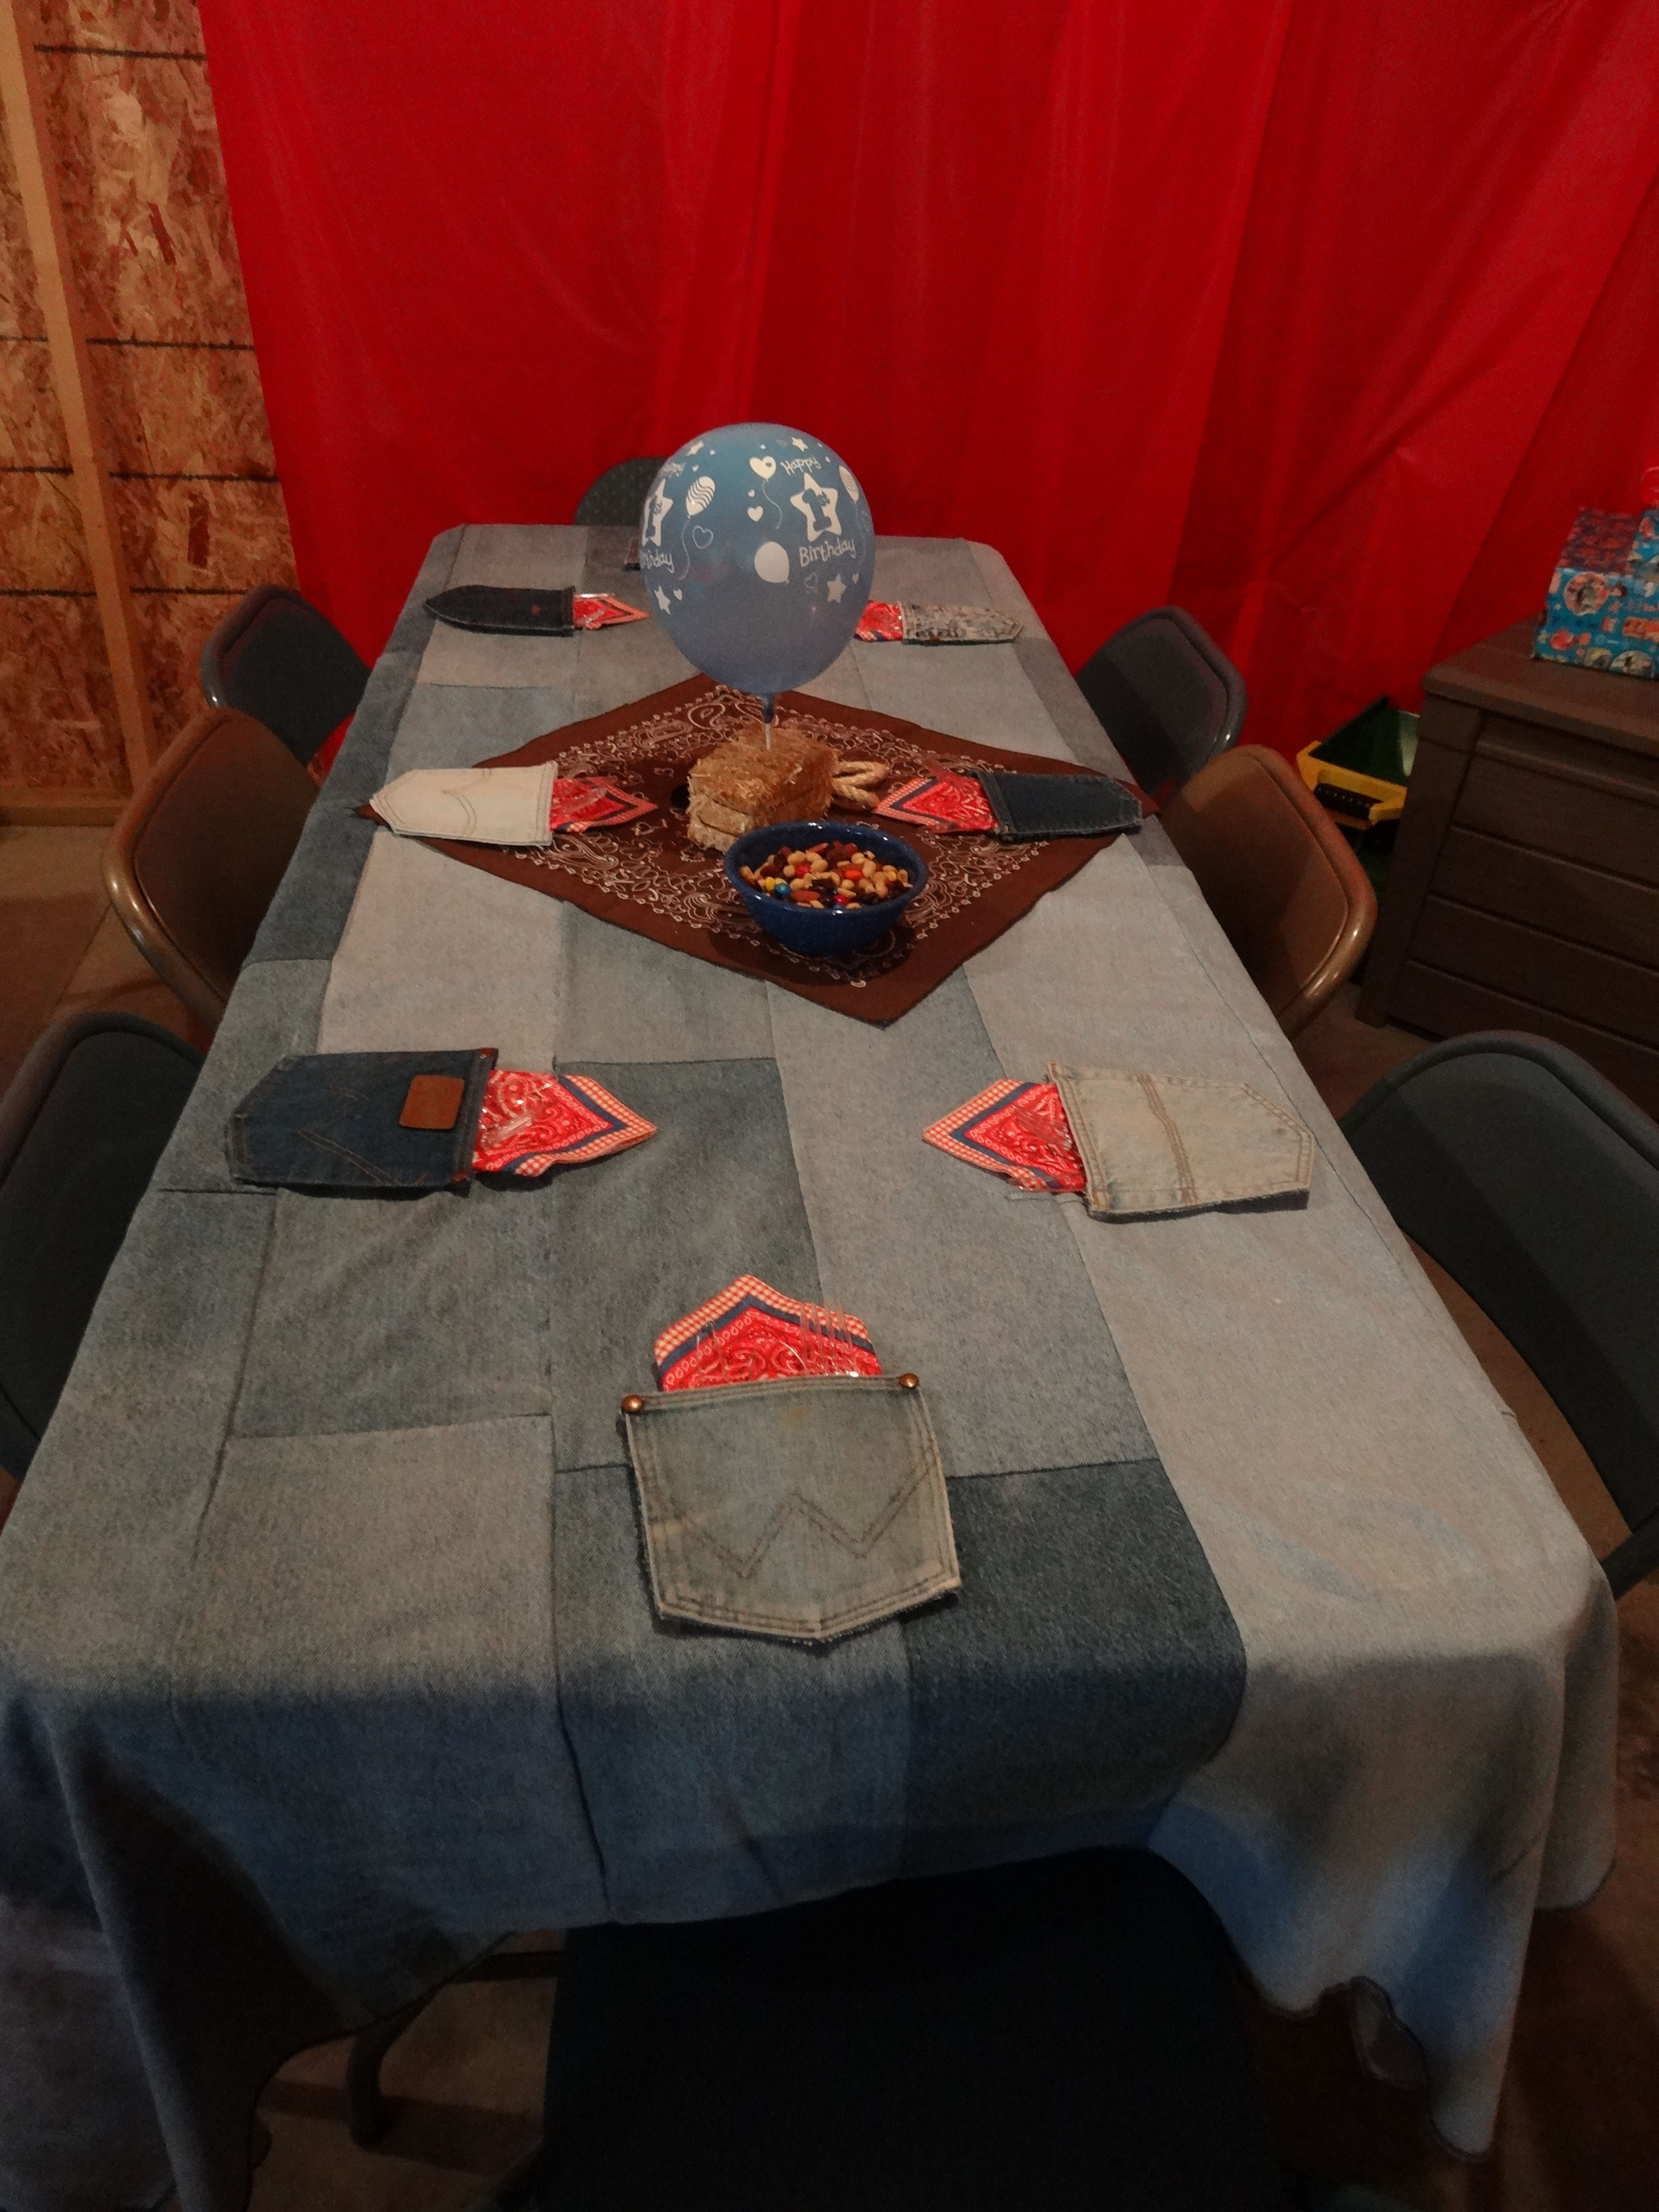 Wild West Cowboy Birthday Party Ideas...Upcycled denim used to make tablecloth & pockets cut out from jeans can be used for napkin and silverware holders.